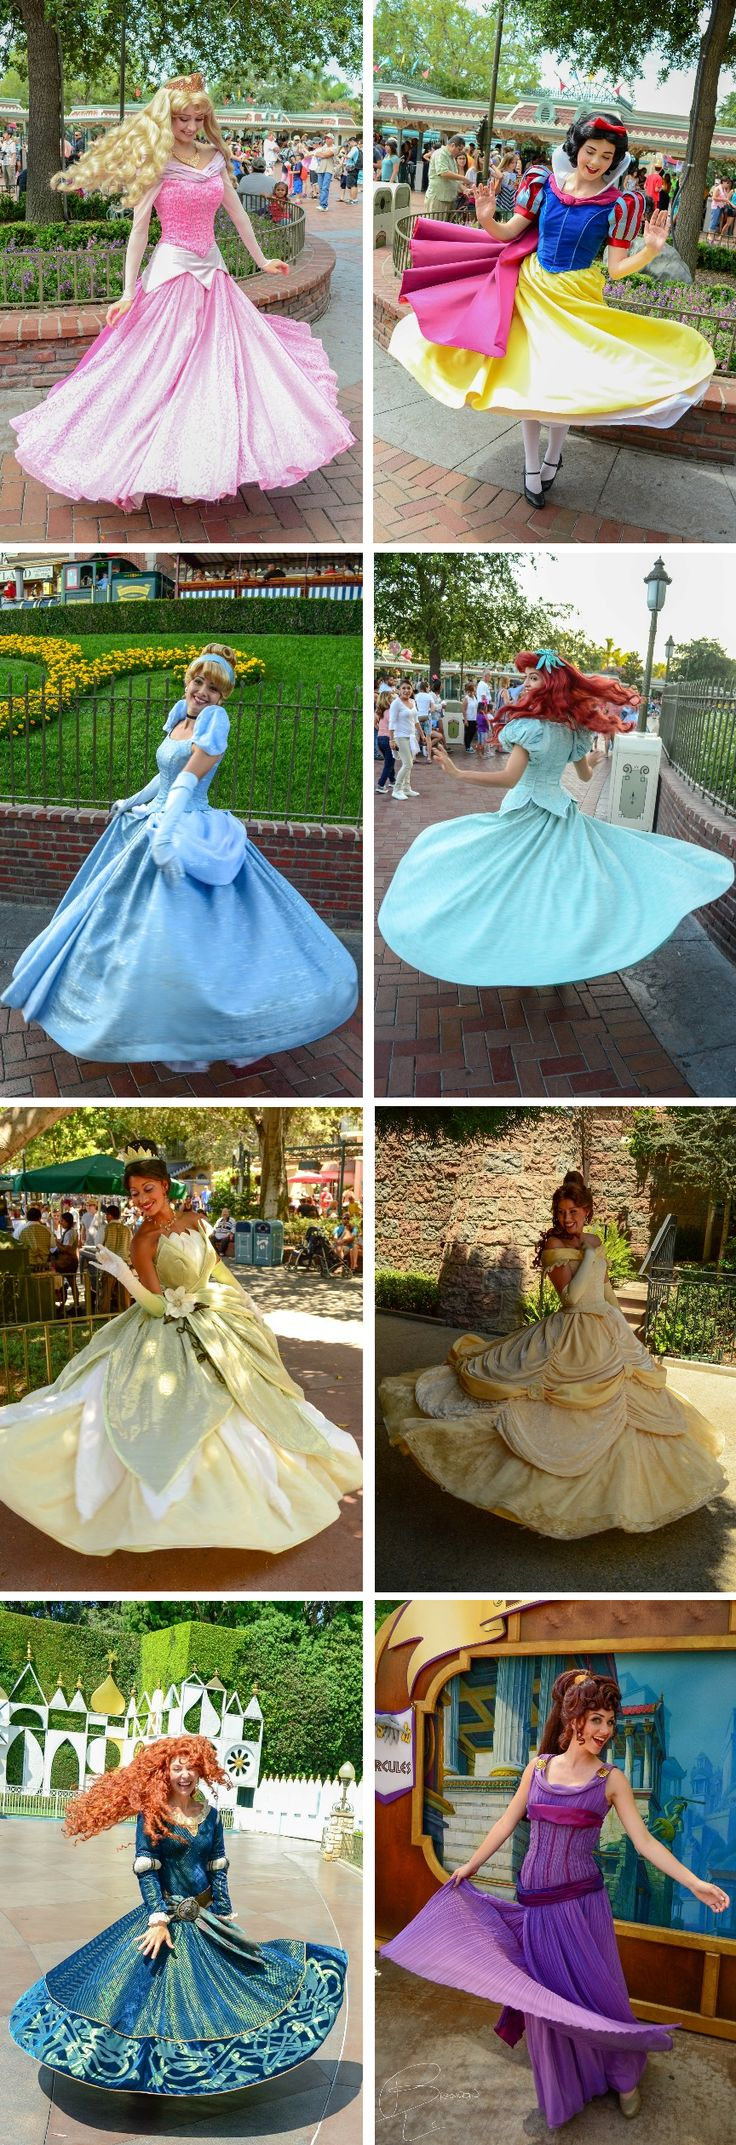 Ask a disney princess to twirl for you, they'll gladly do it. This is the happiest thing ive ever seen.